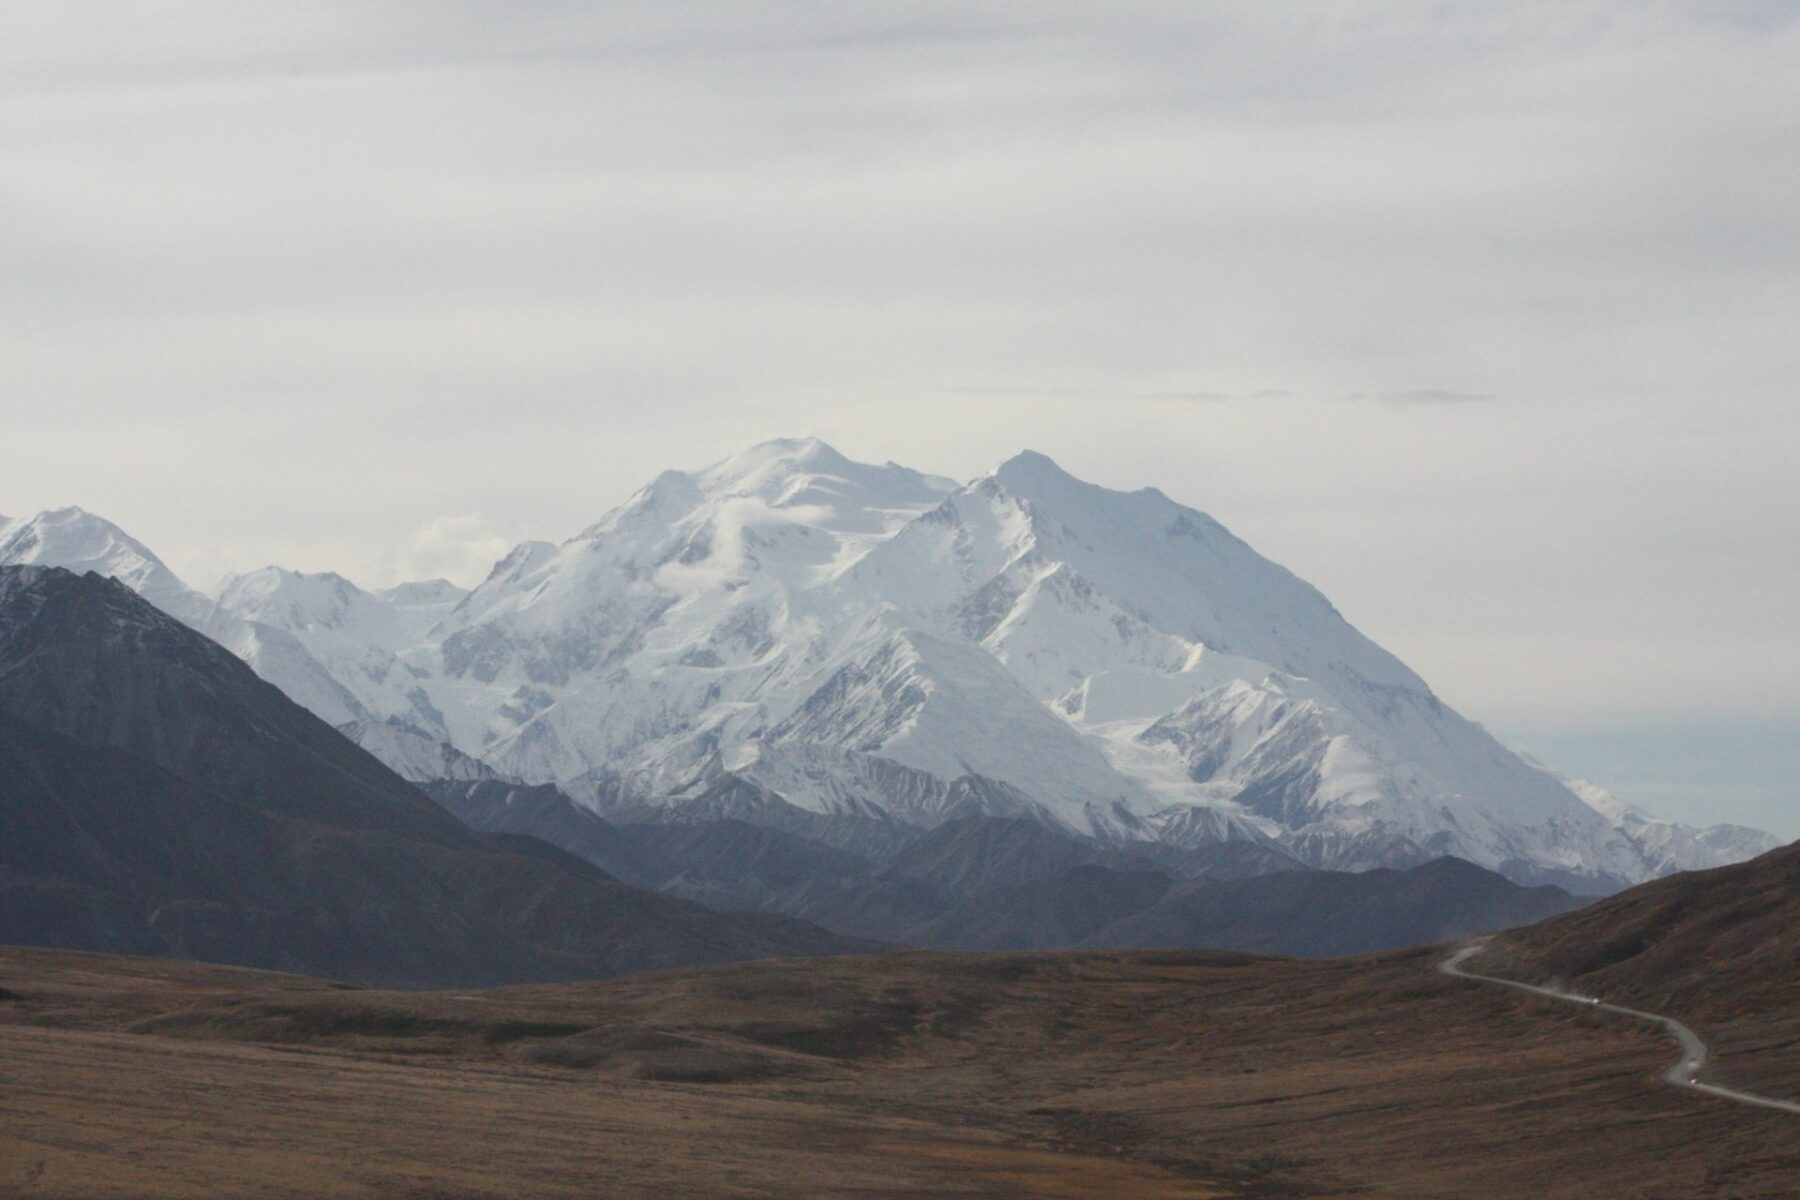 Denali, the High One, is seen across a valley in Denali National Park. There is a road following the valley